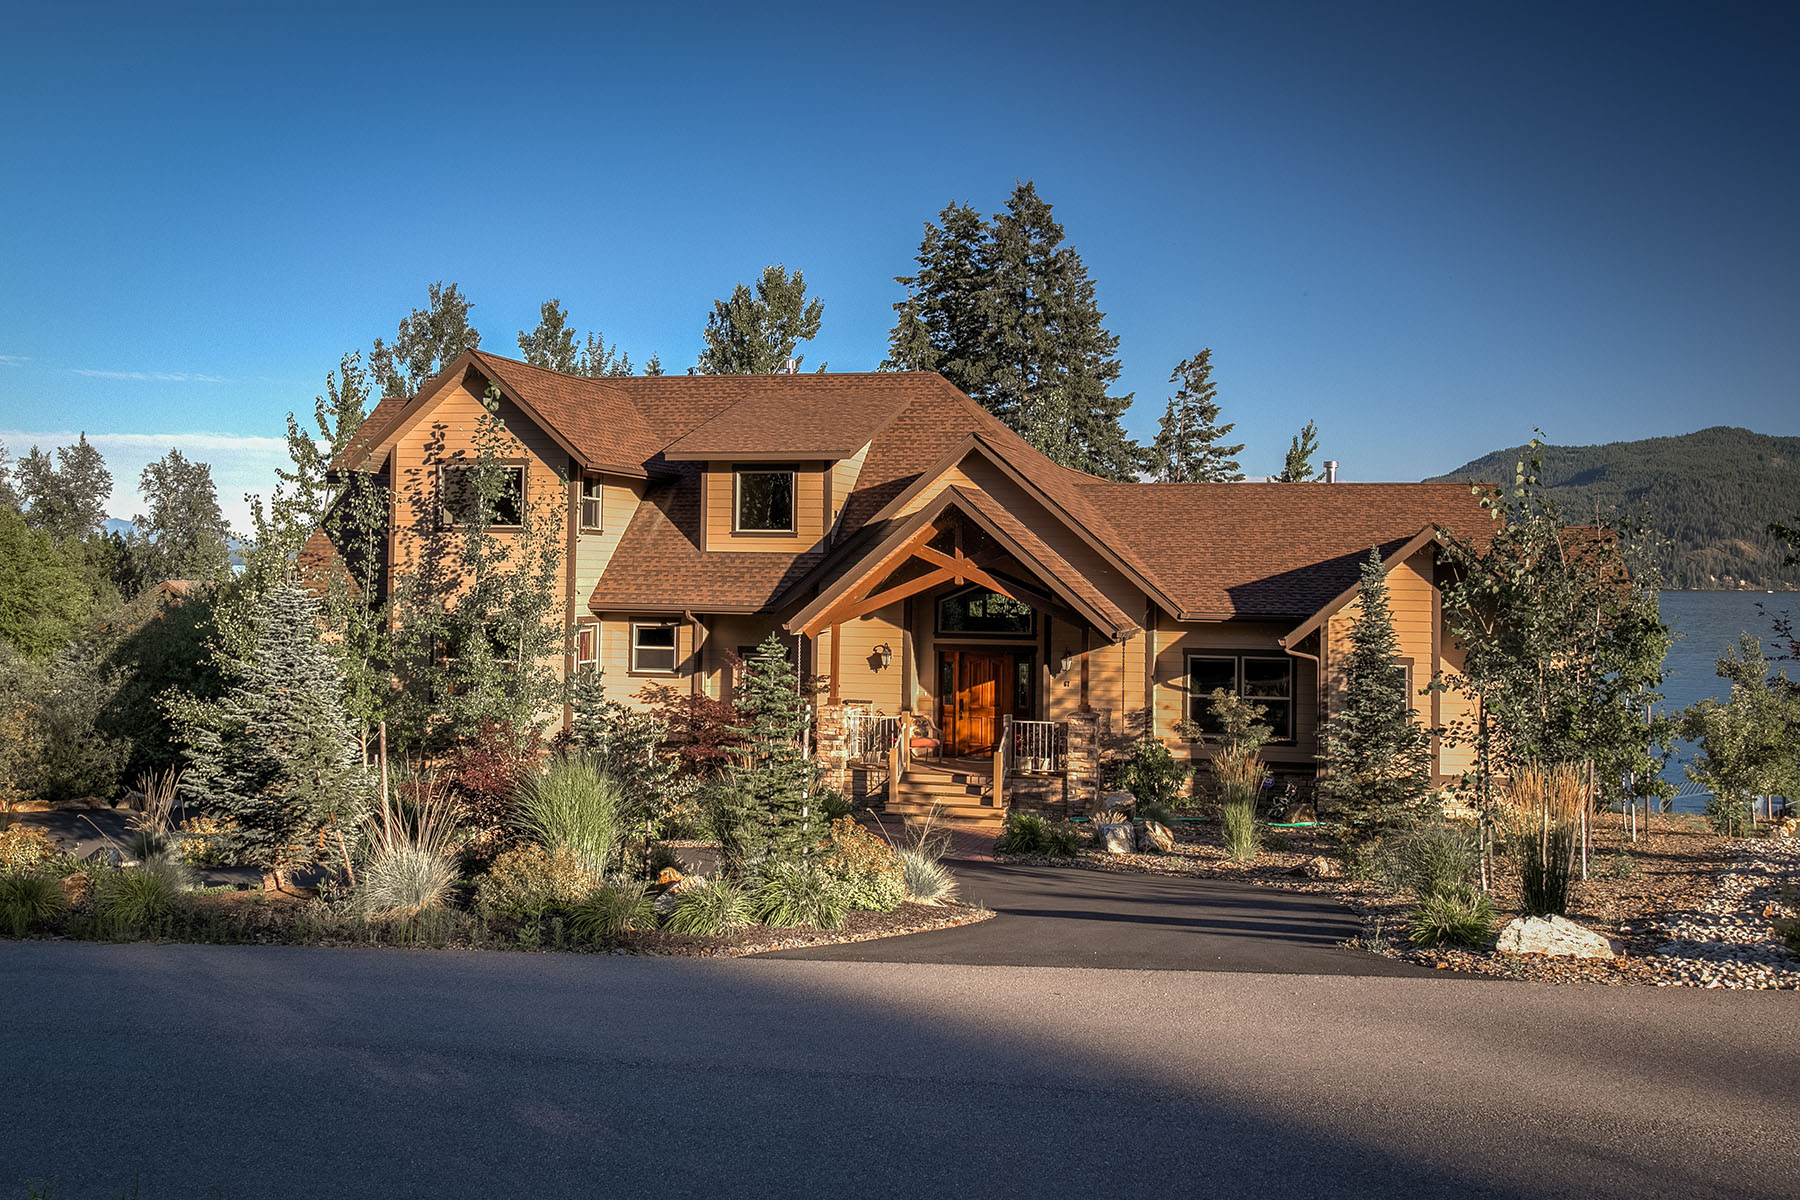 Single Family Home for Sale at Ponder Point Lane 67 Ponder Point Lane Sandpoint, Idaho, 83864 United States